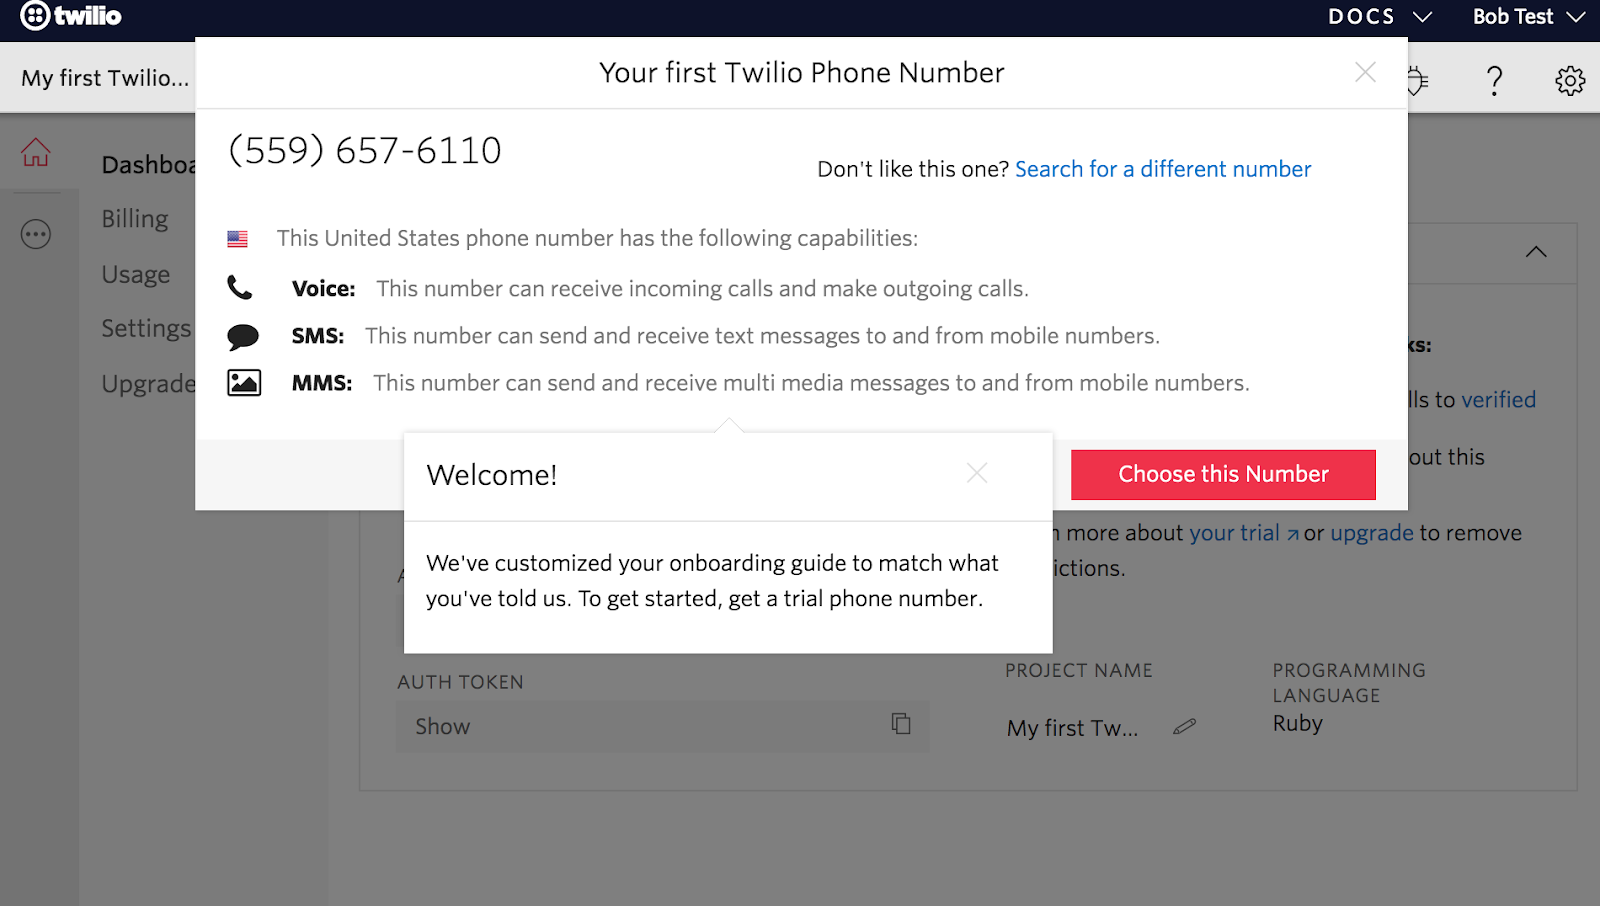 modal window to set up first twilio phone number